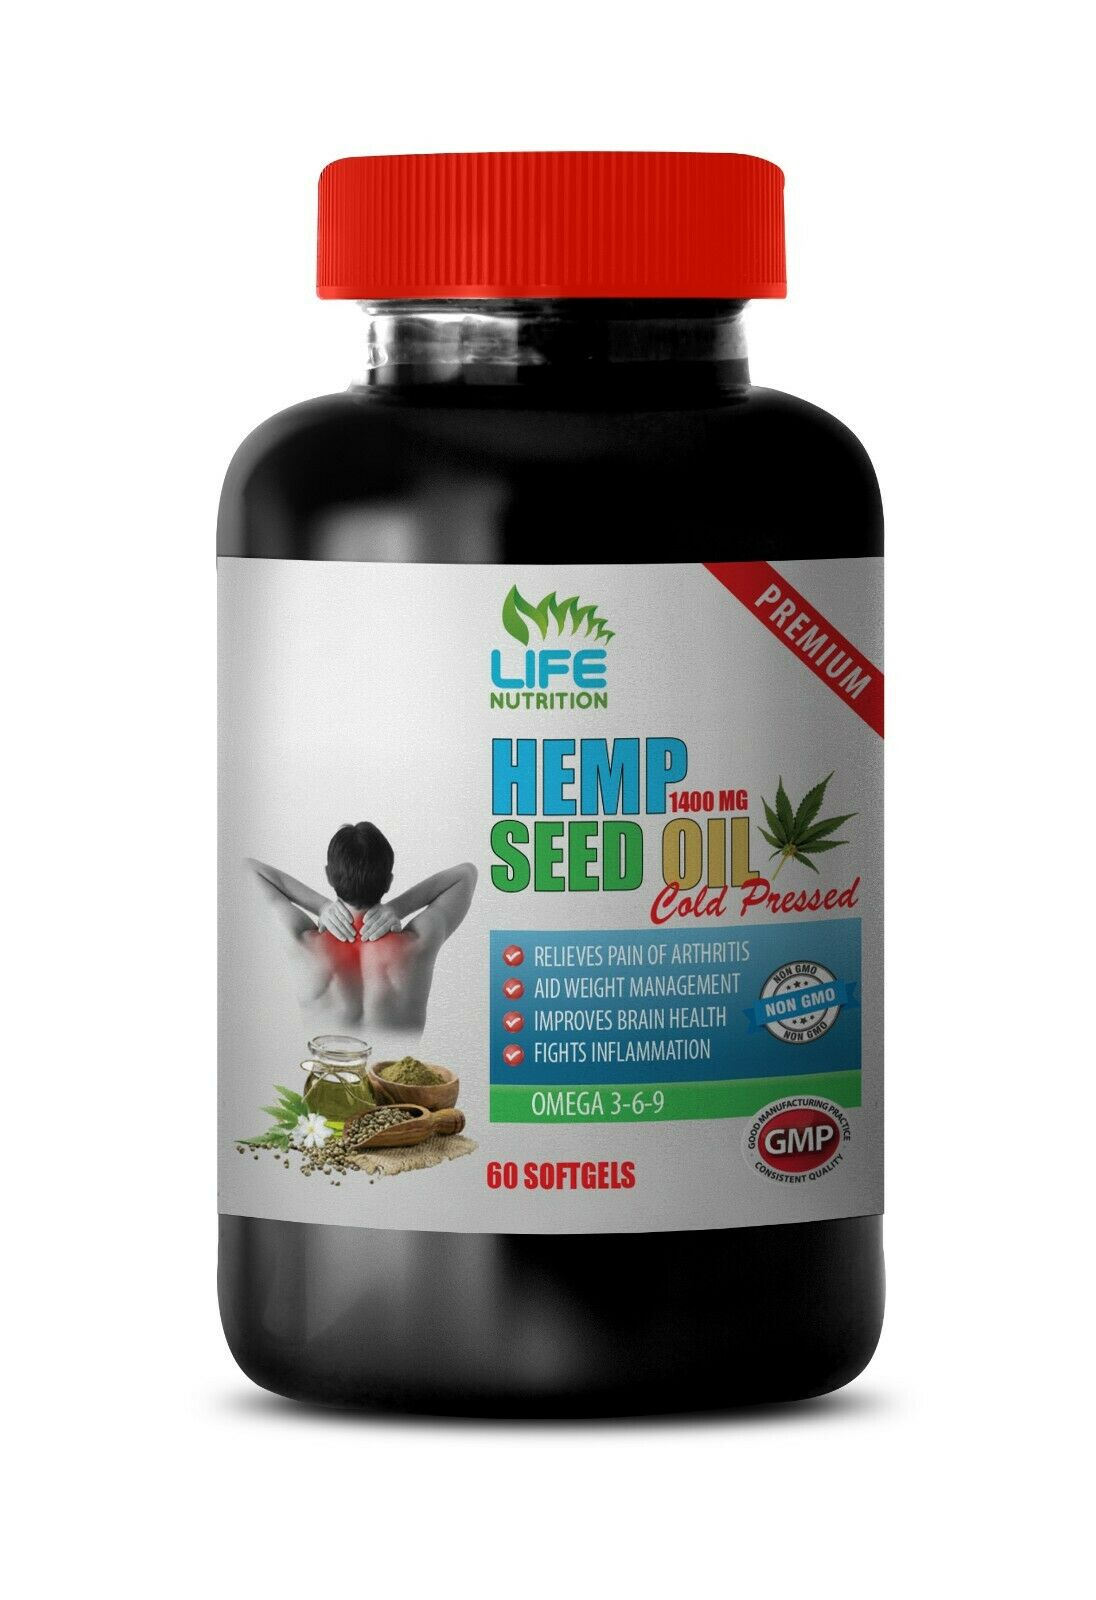 fight inflammation, ORGANIC HEMP SEED OIL 1400mg, sharpen cognitive function 1B